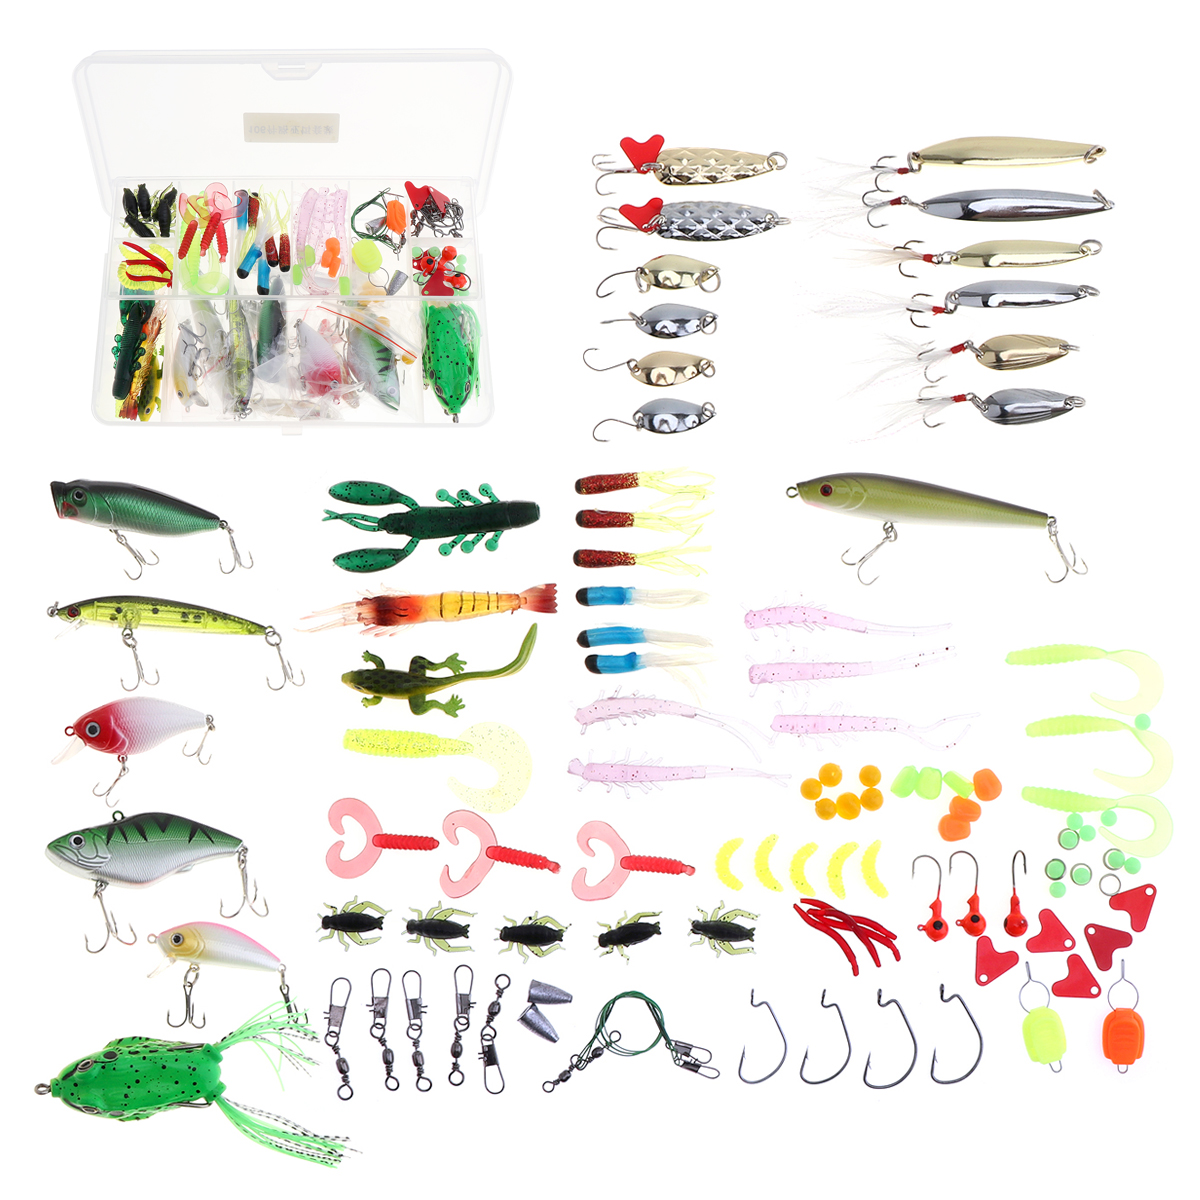 106pcs Multi Fishing Lure Mixed Colors Plastic Metal Bait Hard Soft Lure Kit Artificias Minnow Crank Popper Wobbler Frog and Box 30pcs set fishing lure kit hard spoon metal frog minnow jig head fishing artificial baits tackle accessories